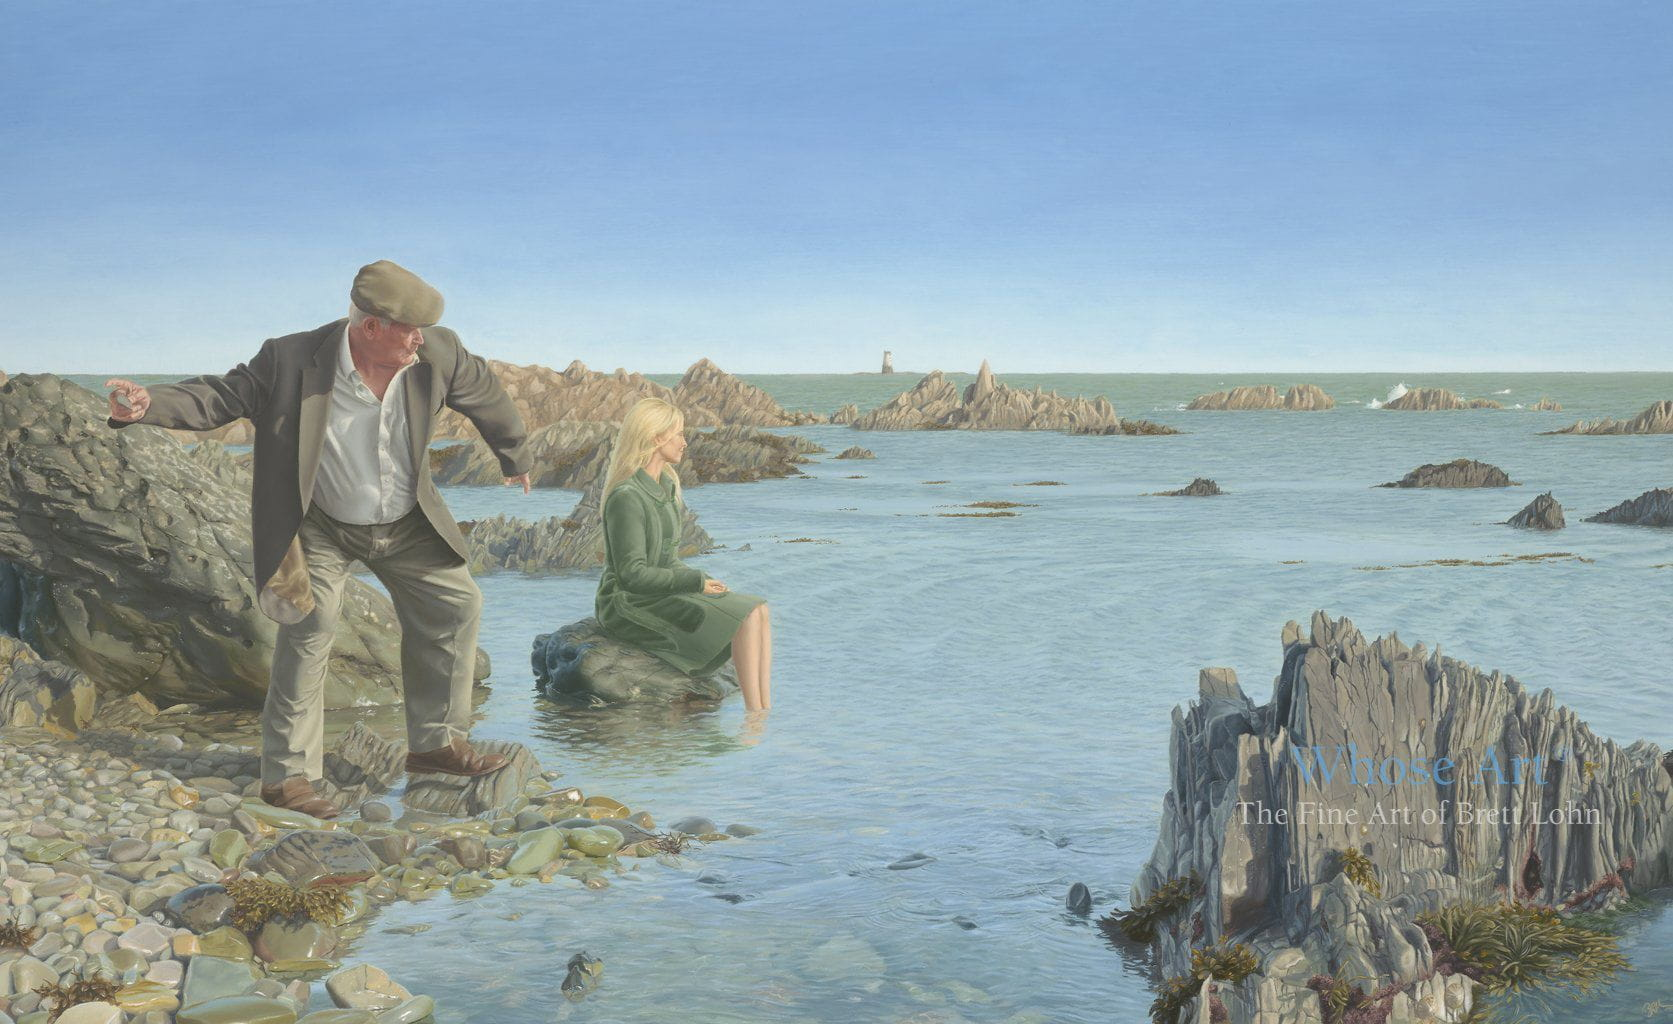 Narrative art print story of a man beneath a blue sky, standing by the sea, skimming a stone with a mysterious lady paddling